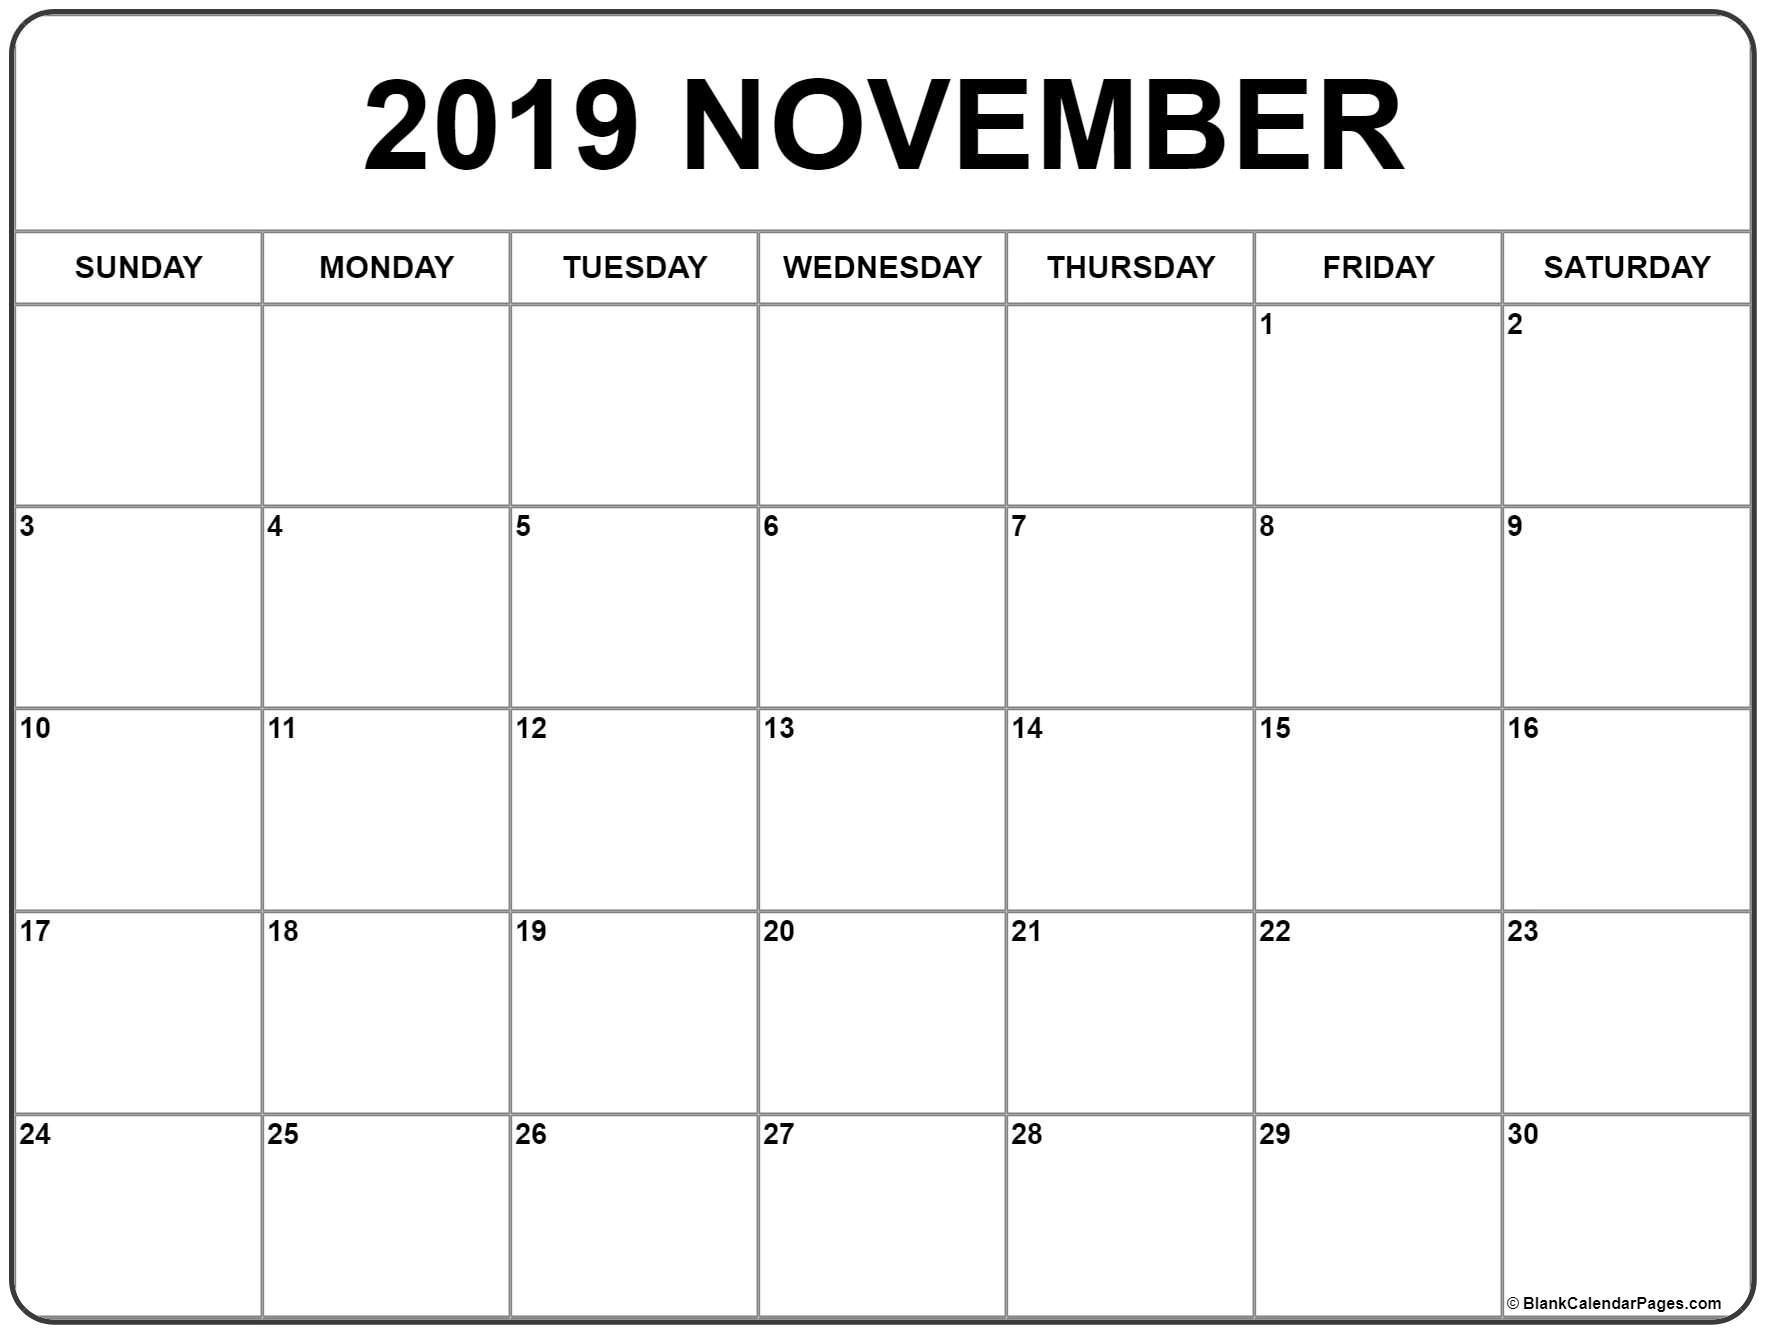 November 2019 Calendar | Monthly Calendar Printable